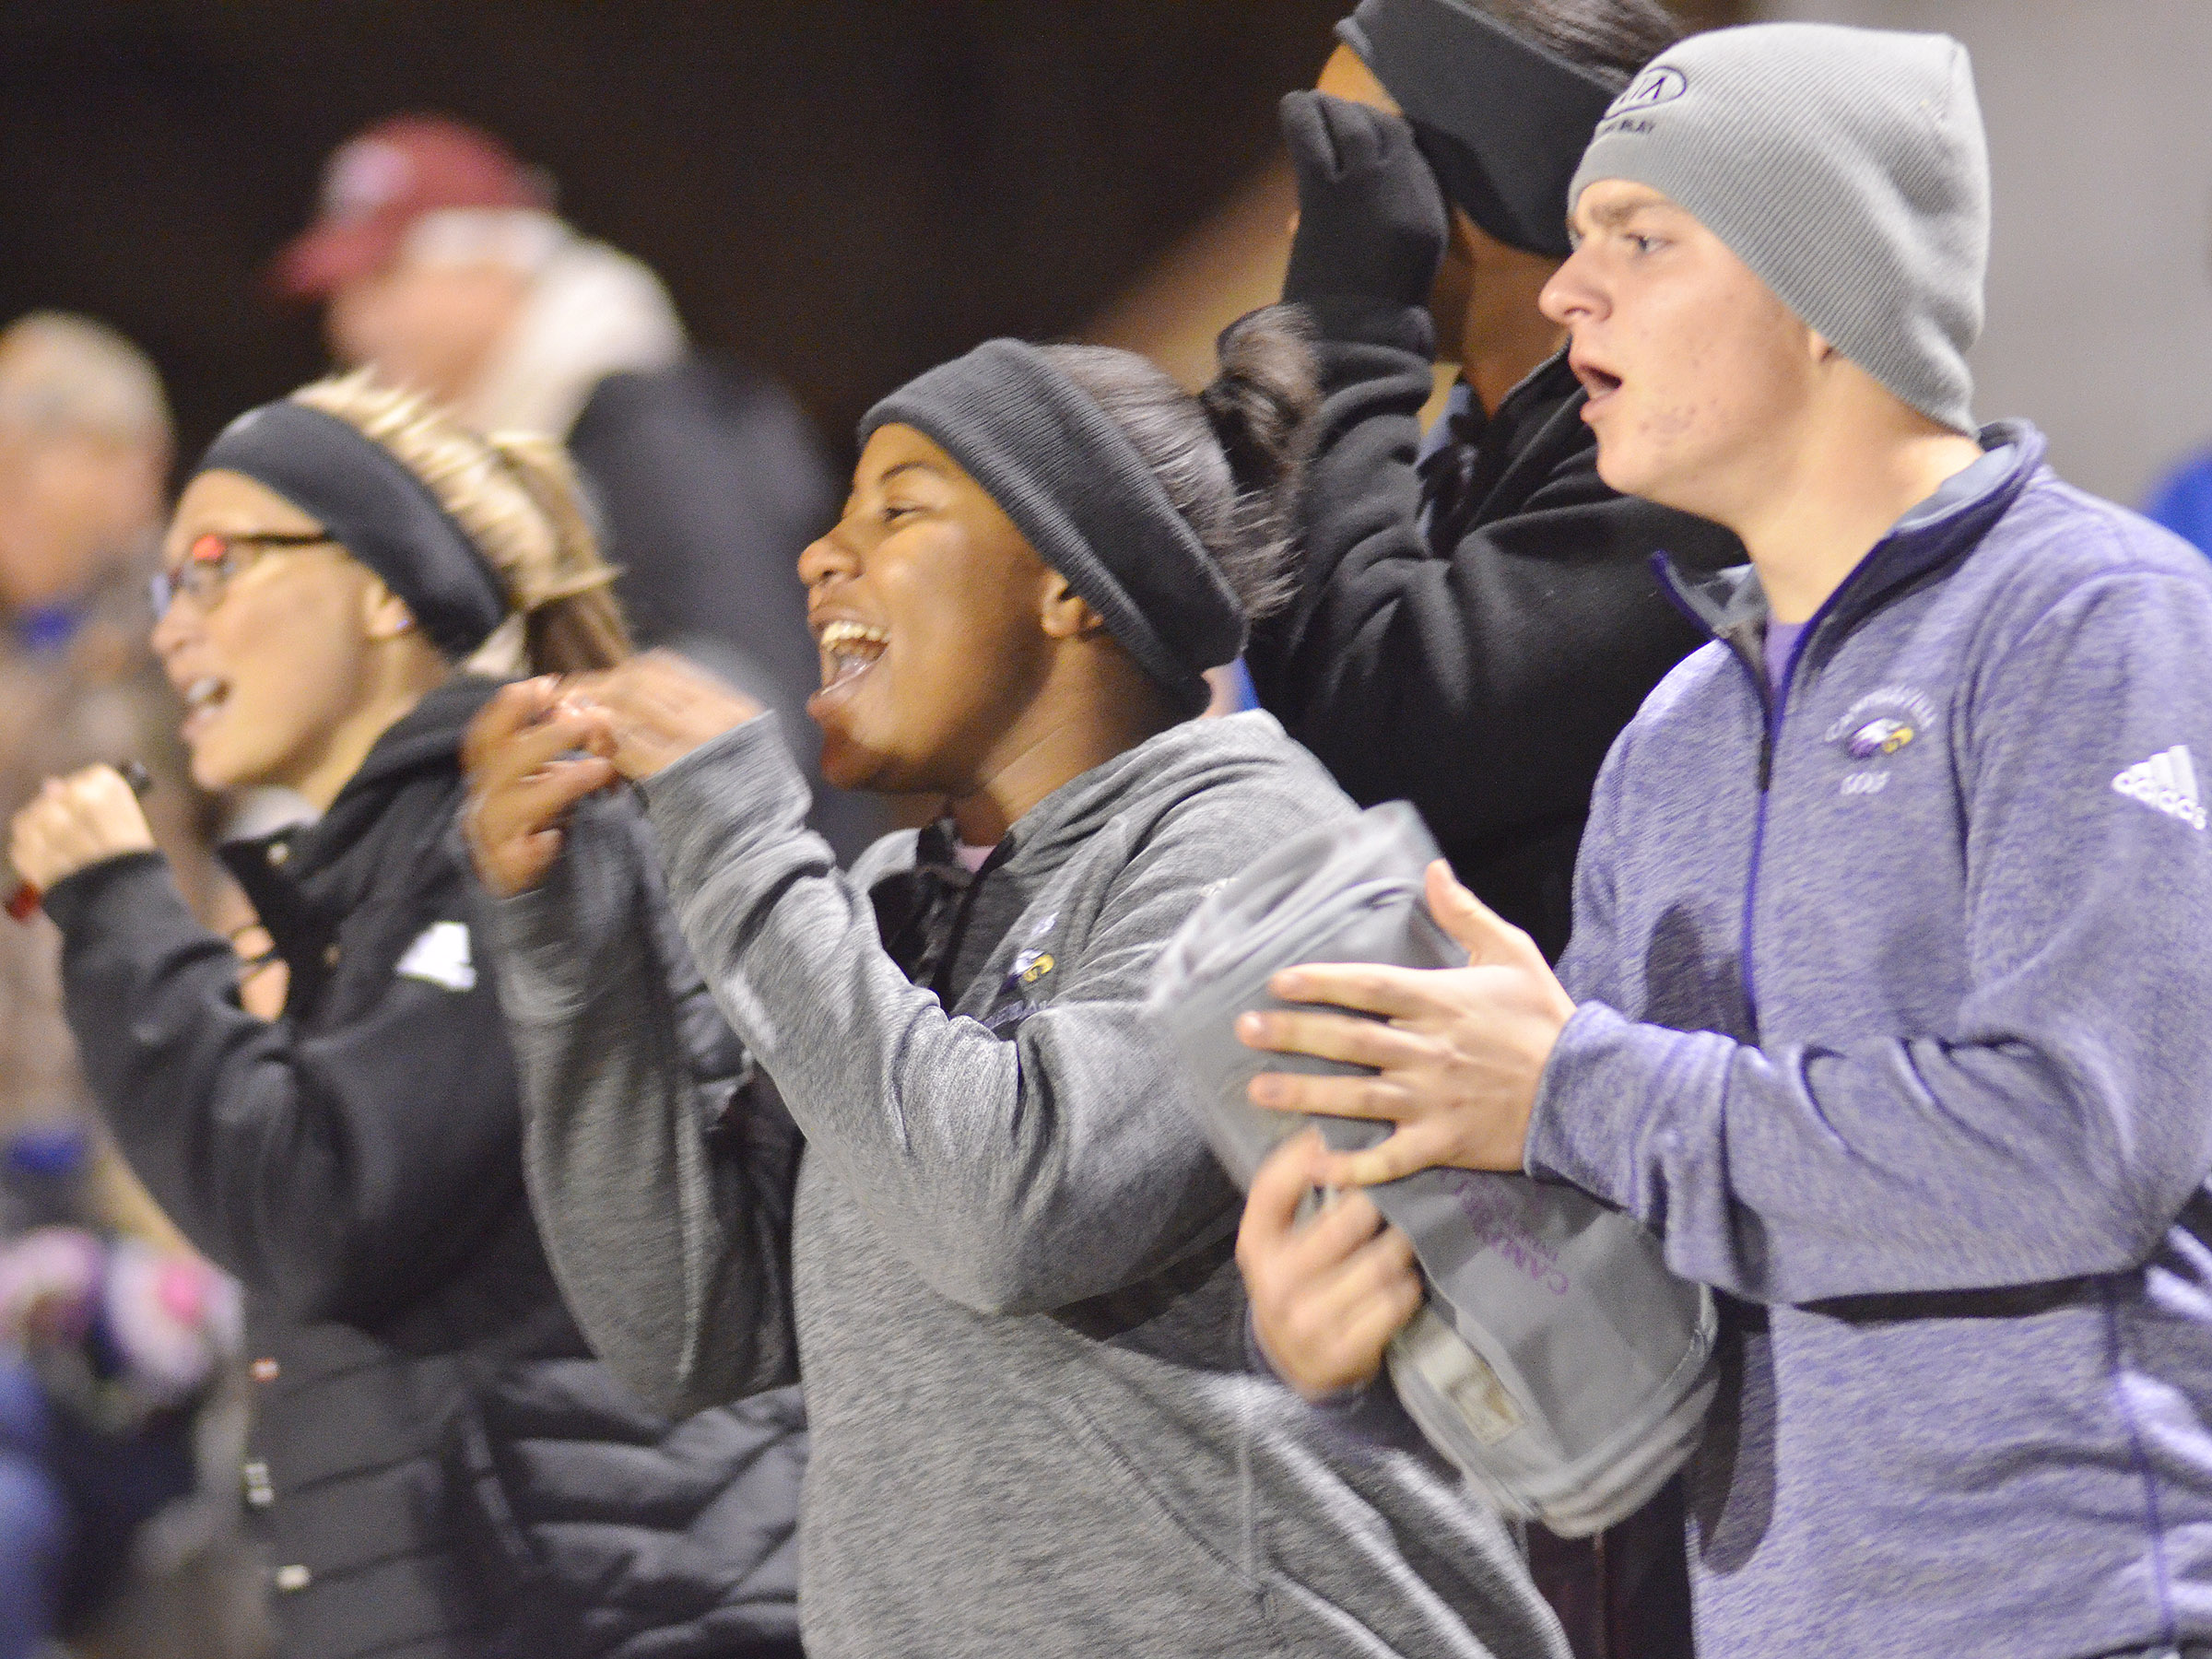 CHS students, from left, juniors Tatem Wiseman and Kiyah Barnett and senior Alex Doss cheer for the Eagles.